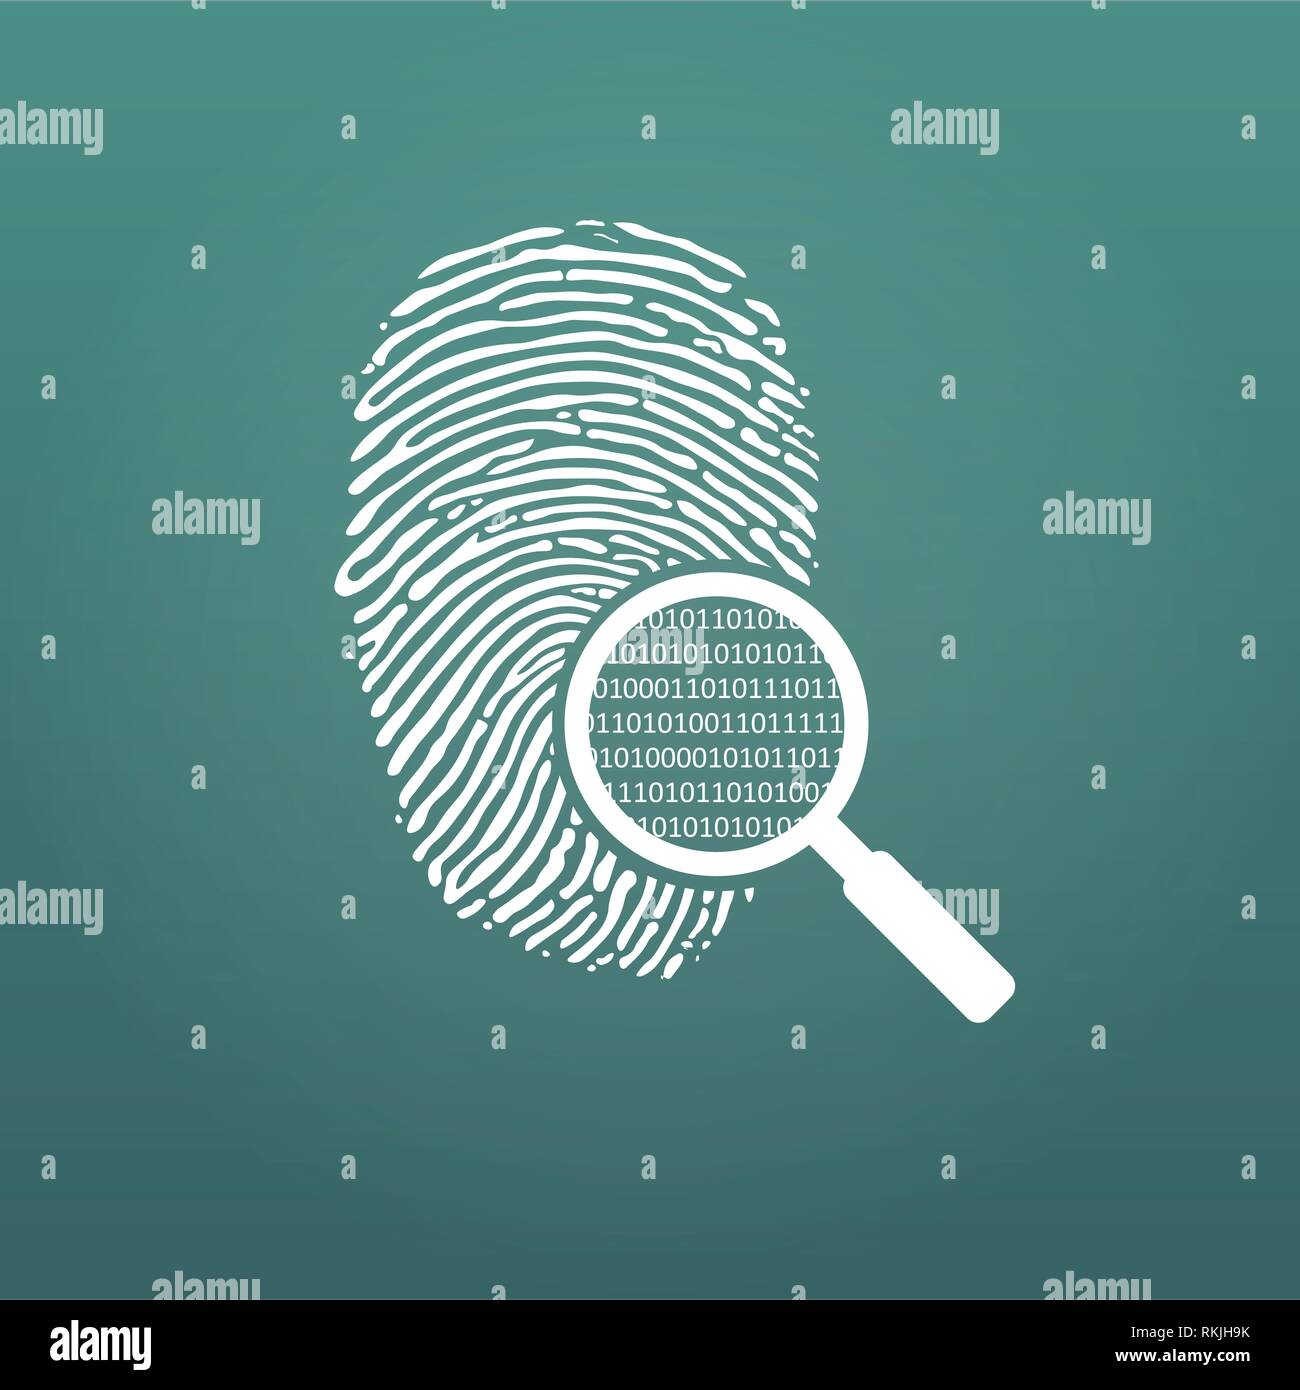 ID fingerprint icon with magnifying glass and matrix 1 0. Fingerprint vector illustration isolated on modern background - Stock Vector